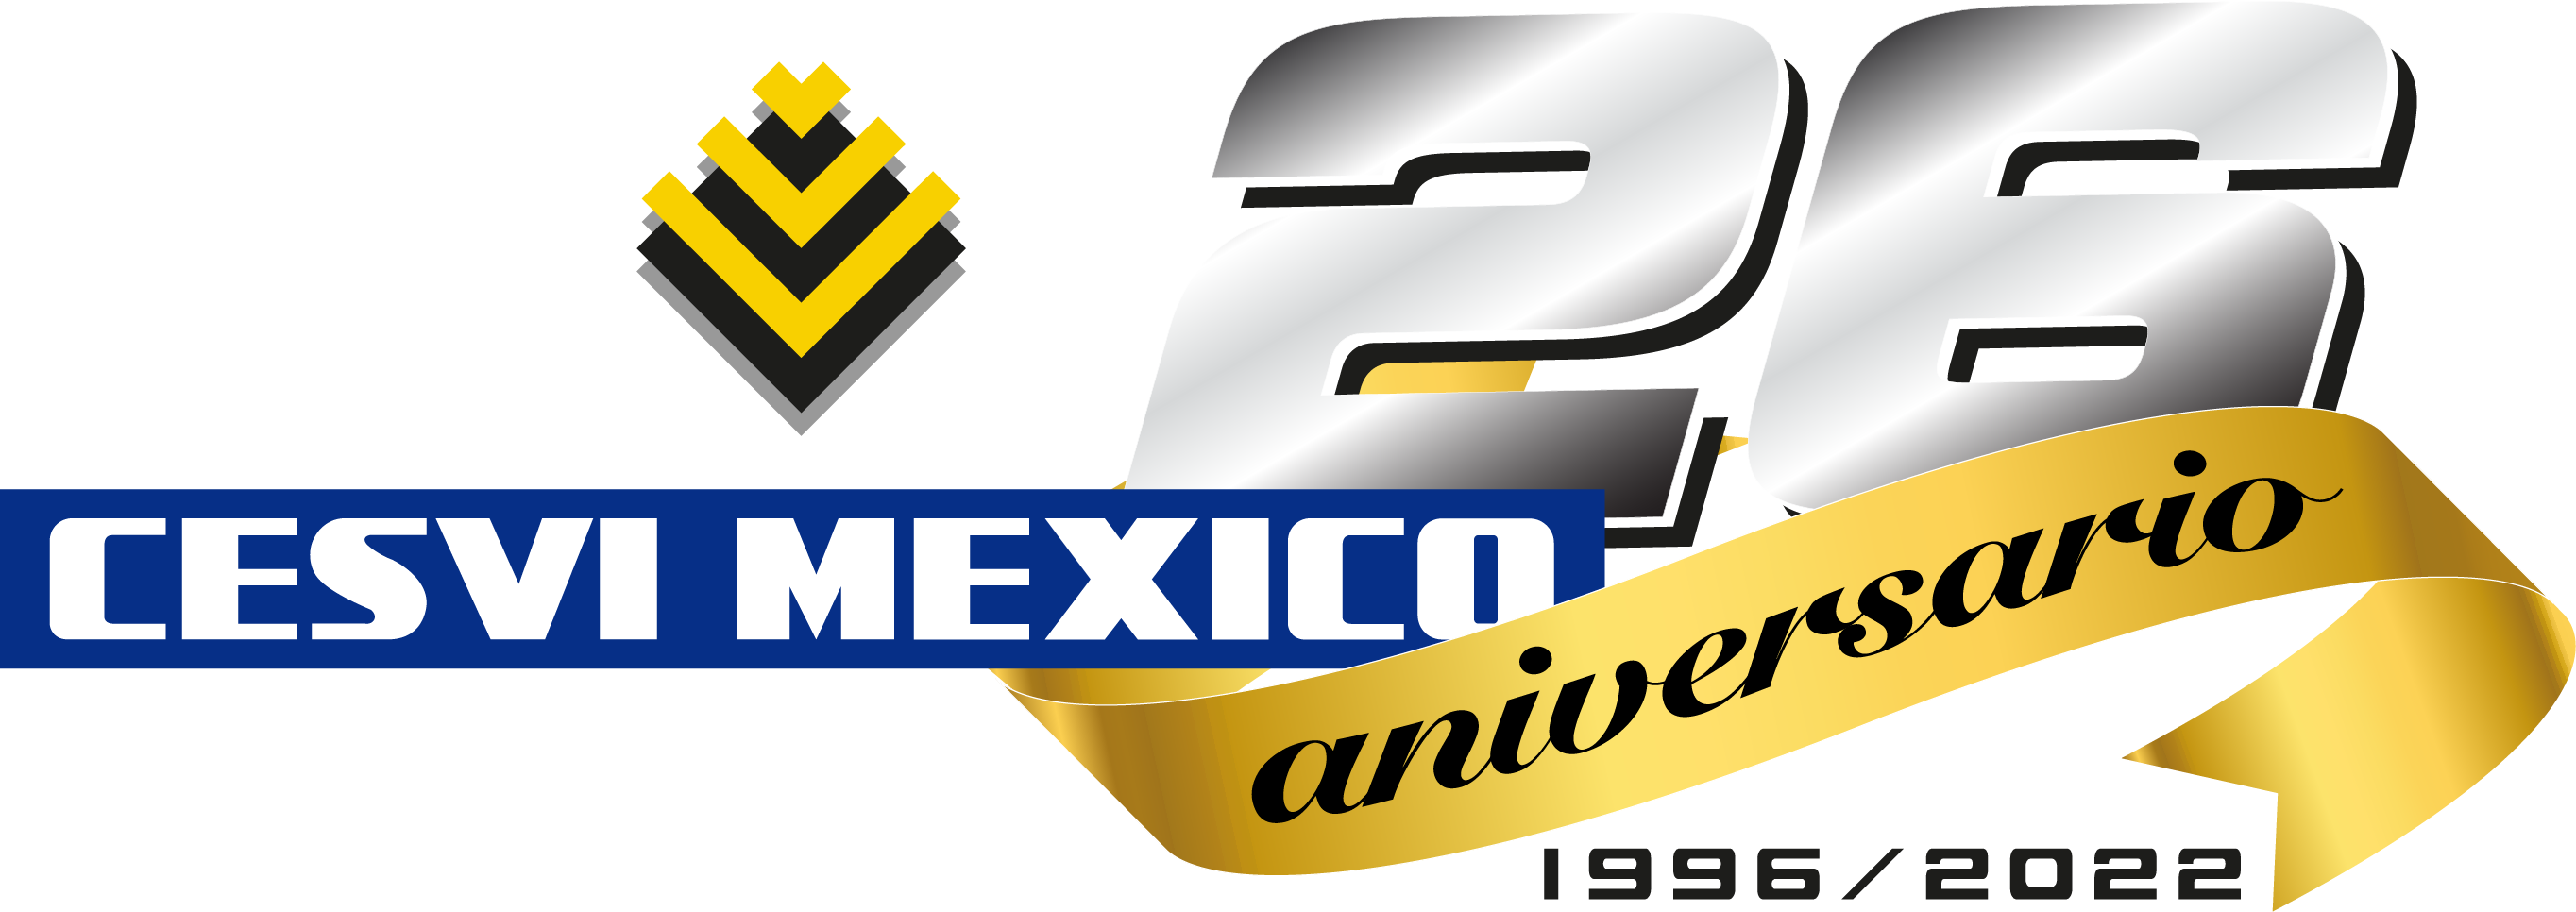 Image result for cesvi mexico